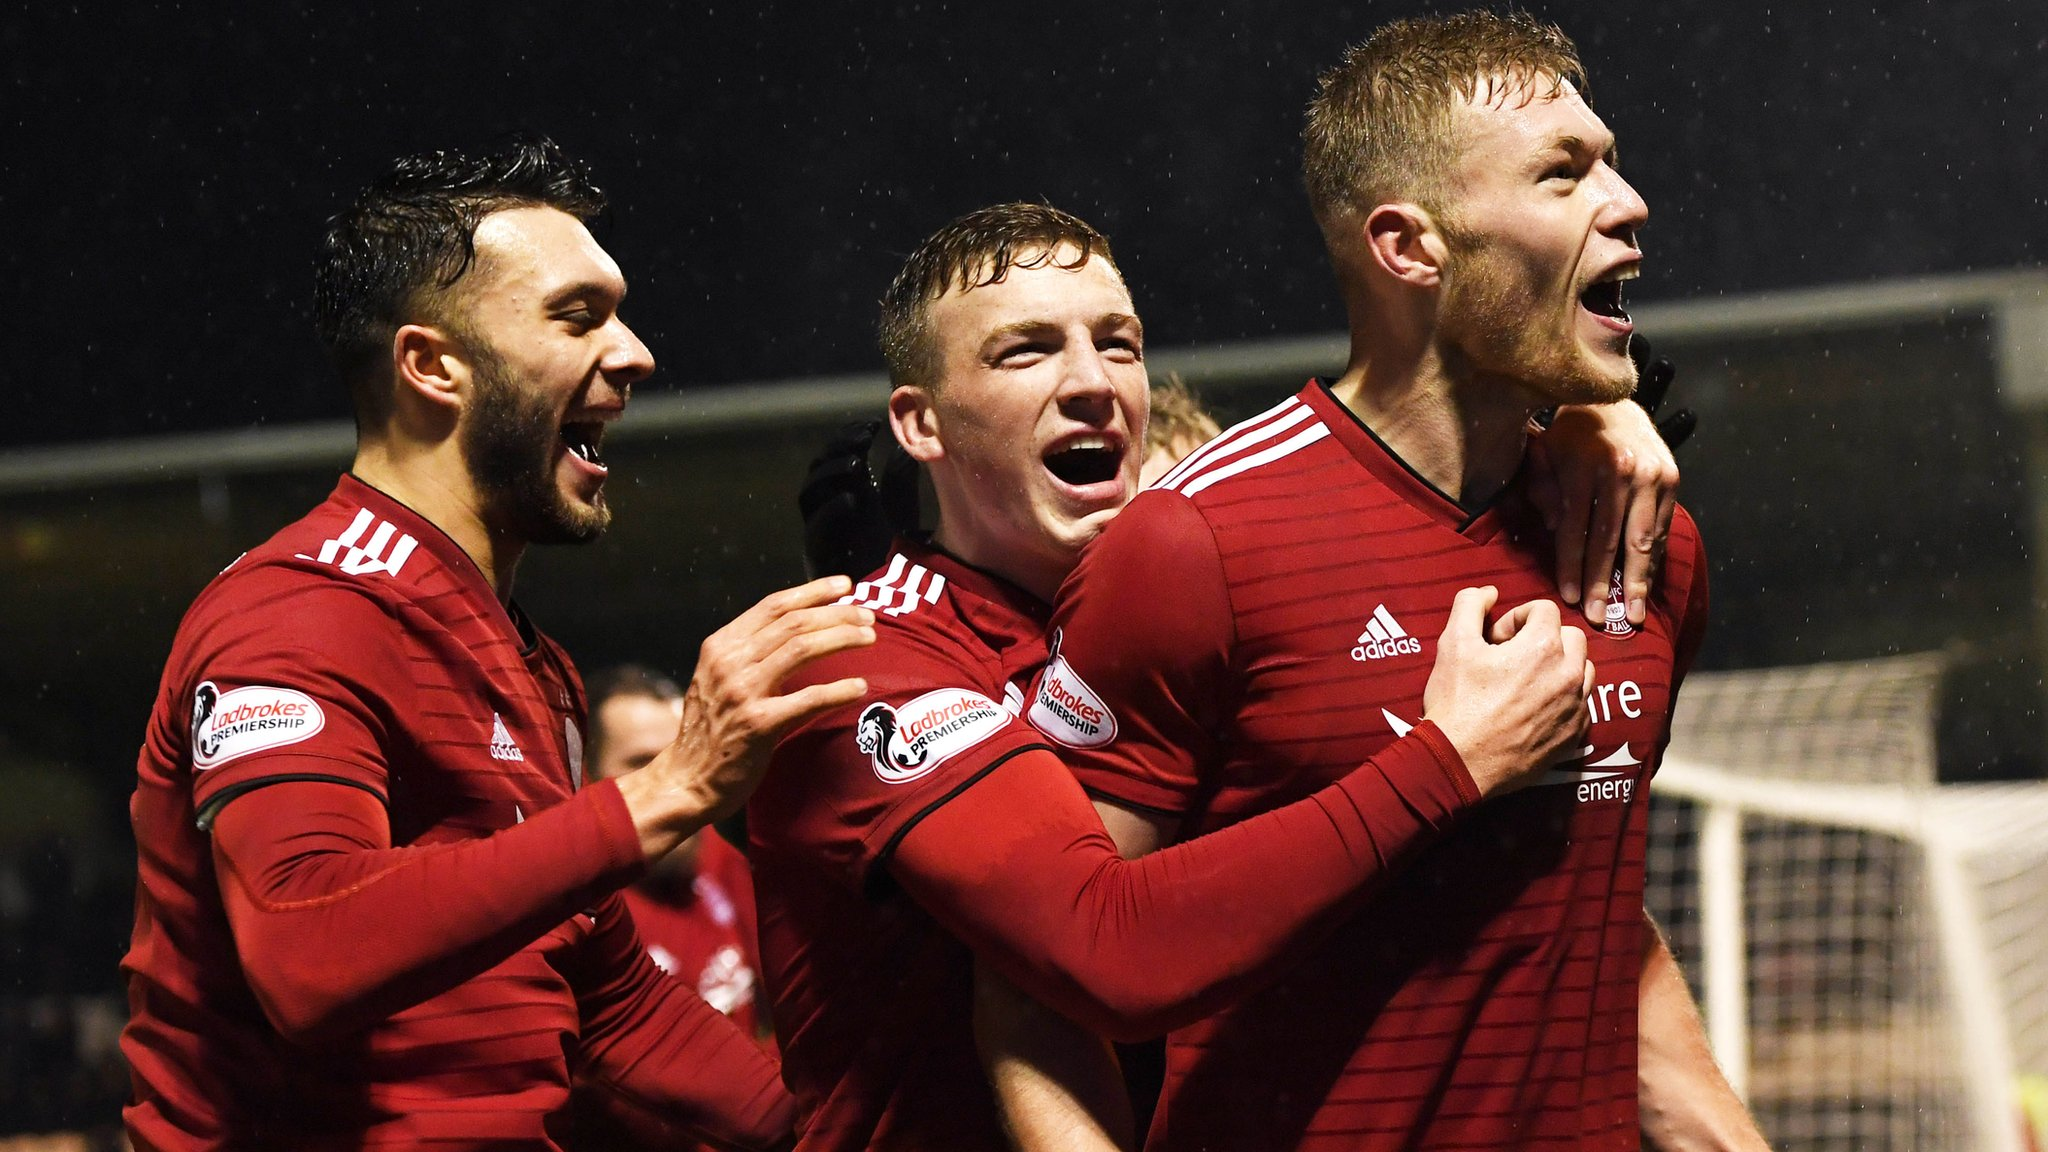 St Mirren 1-2 Aberdeen: Sam Cosgrove on target as Dons move fourth